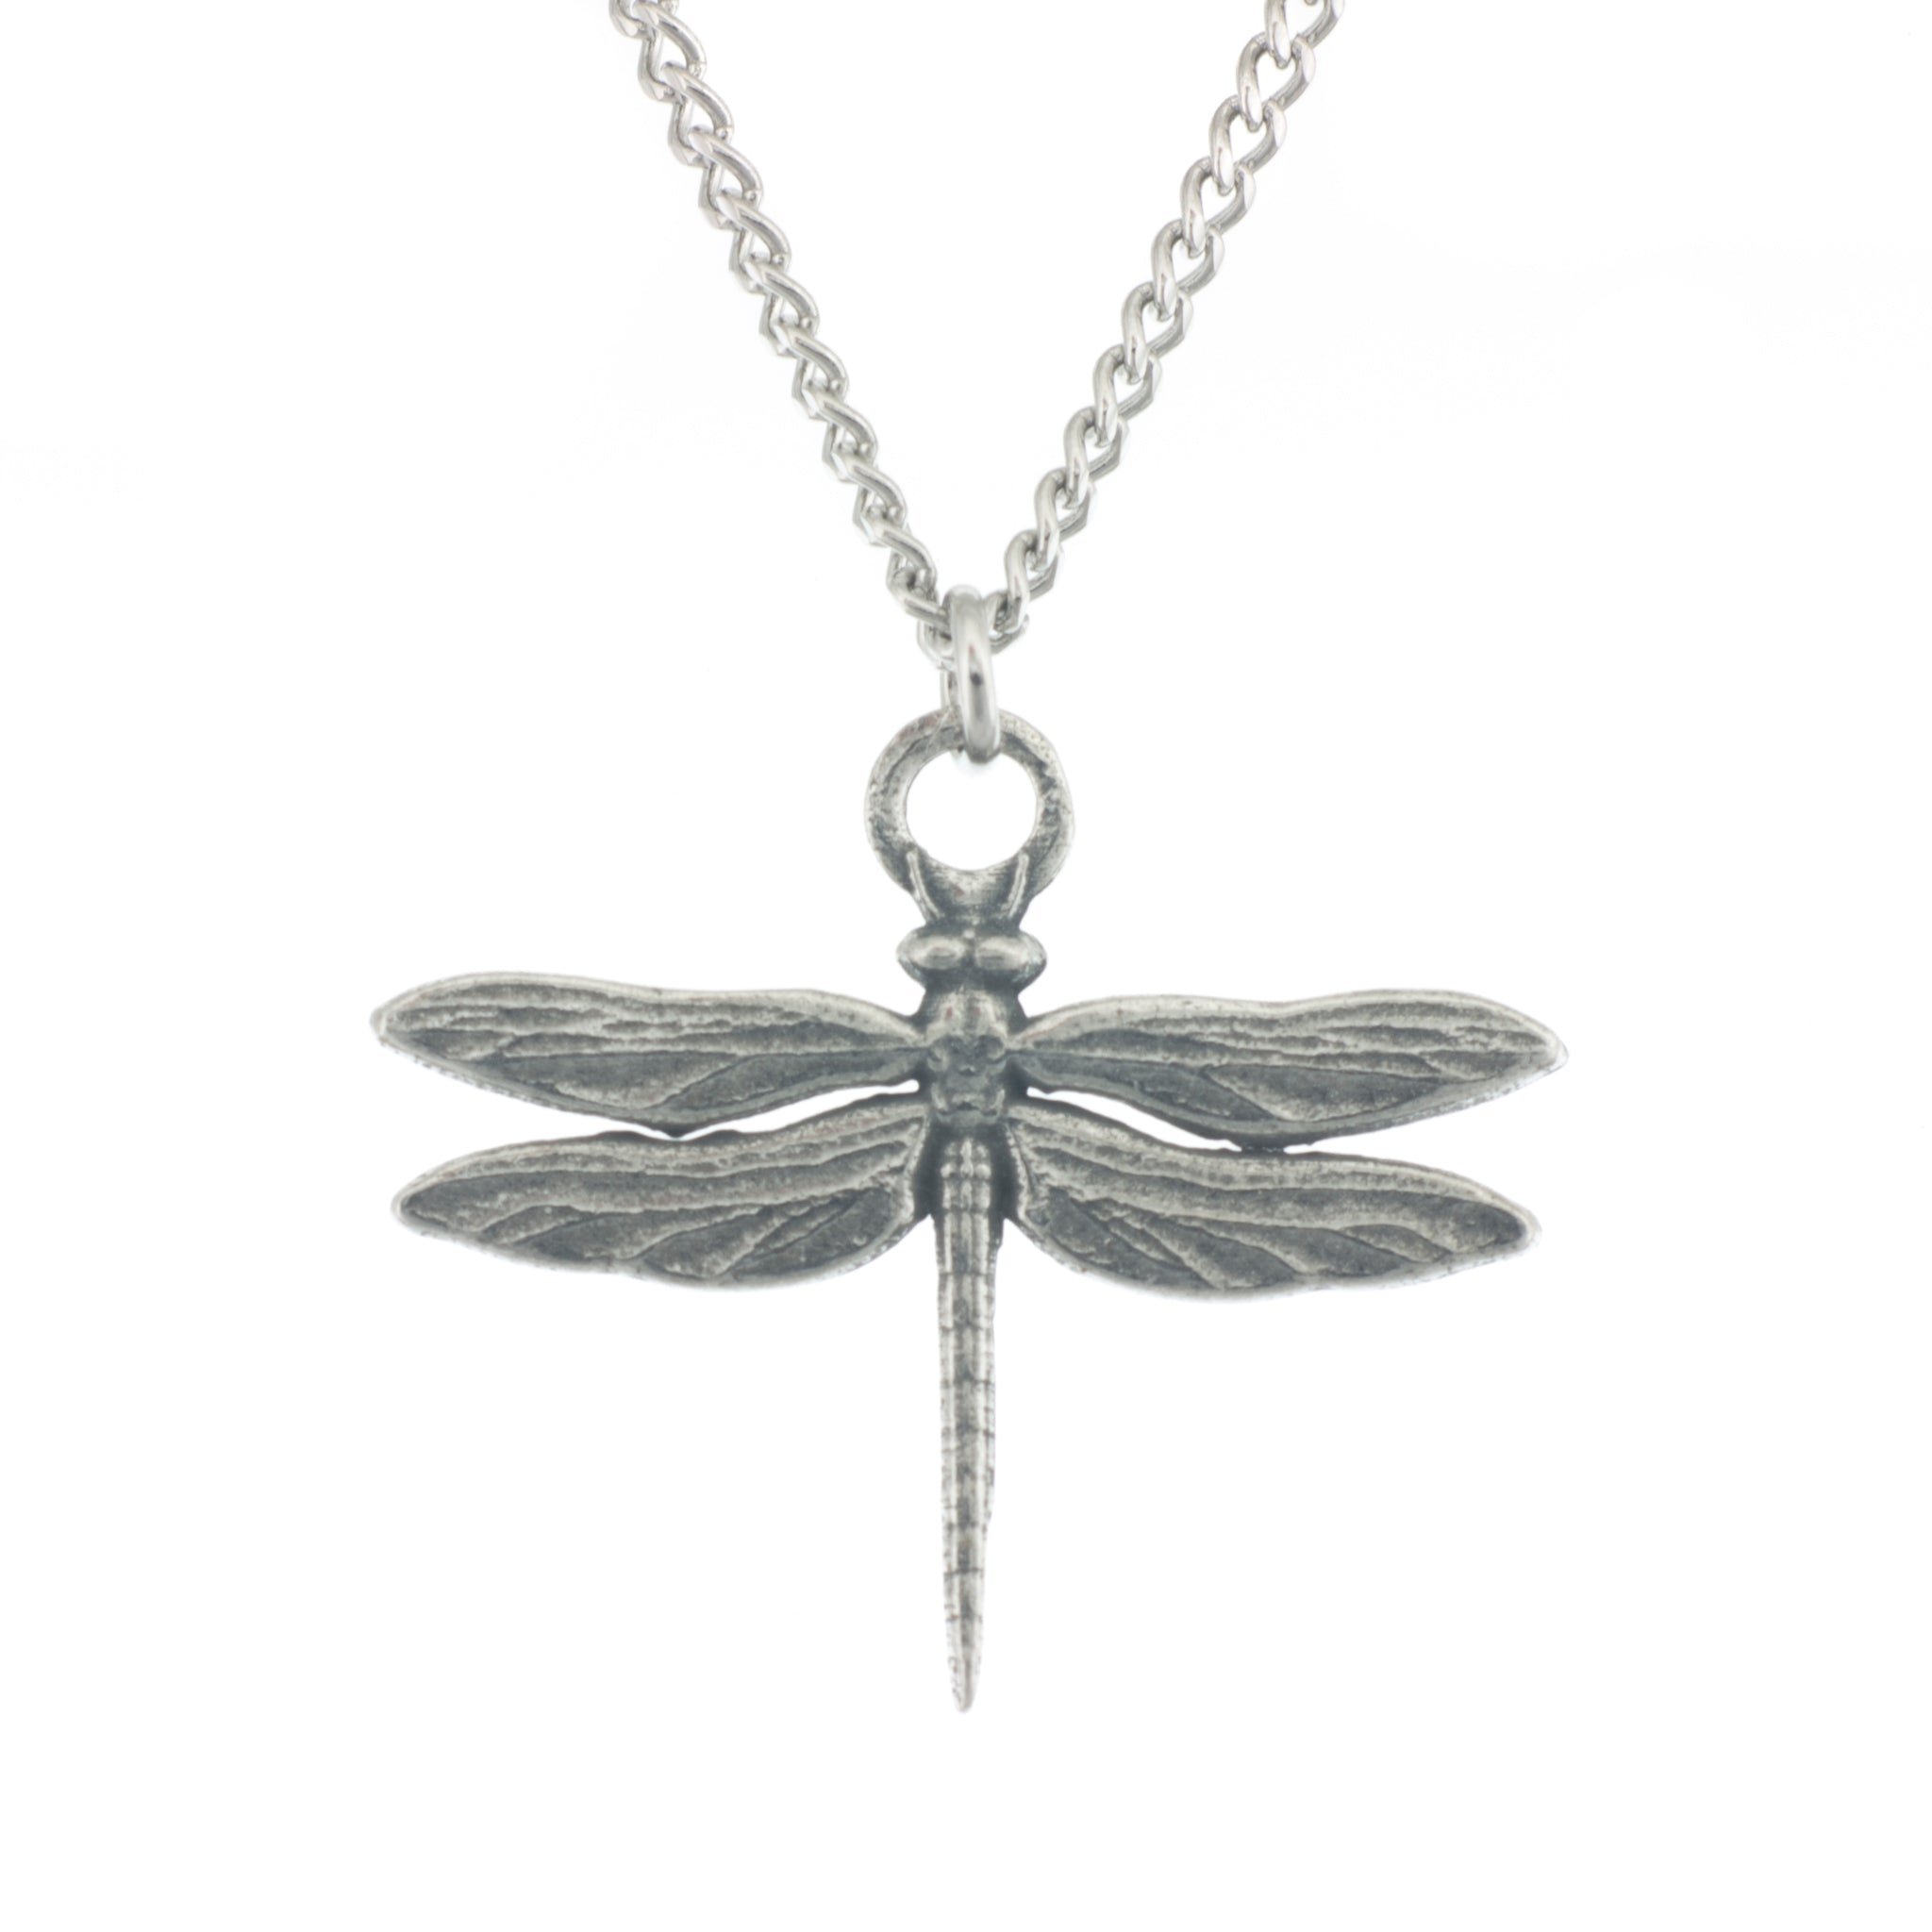 jewellery pendant collections dragonfly fleet sheila